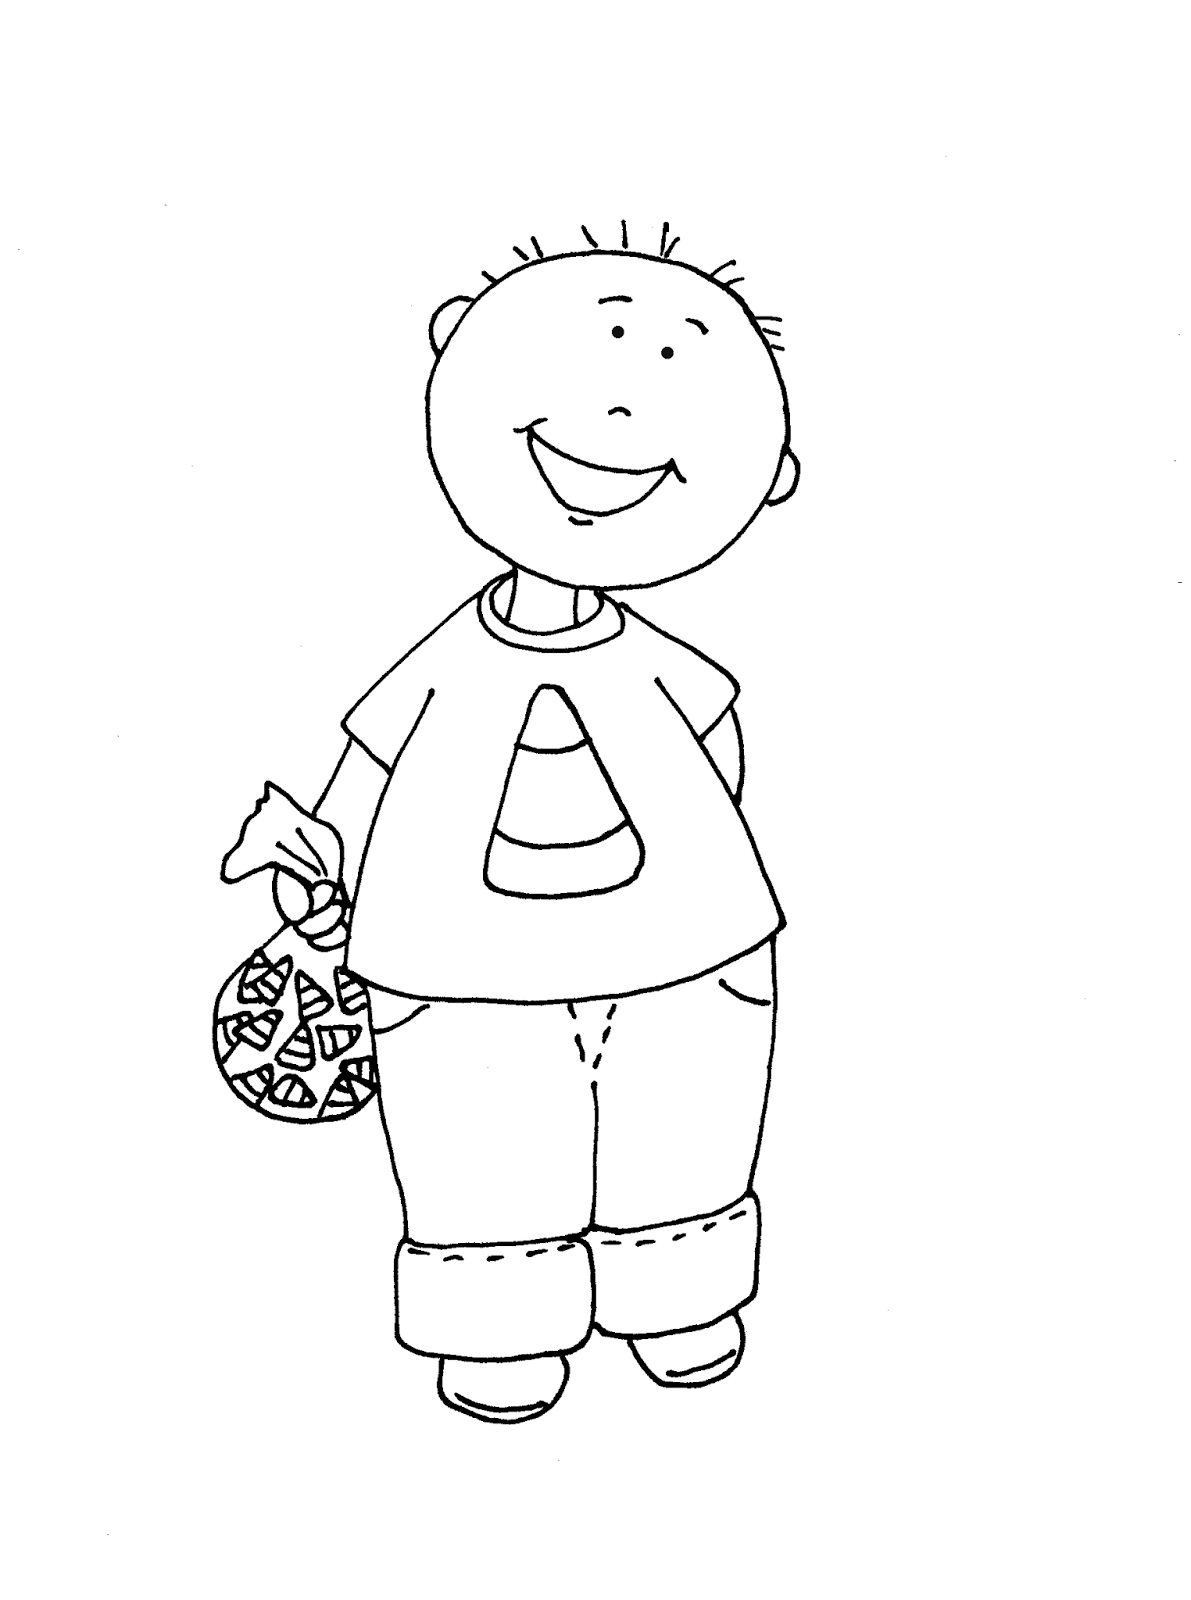 candy corn coloring pages - photo#50